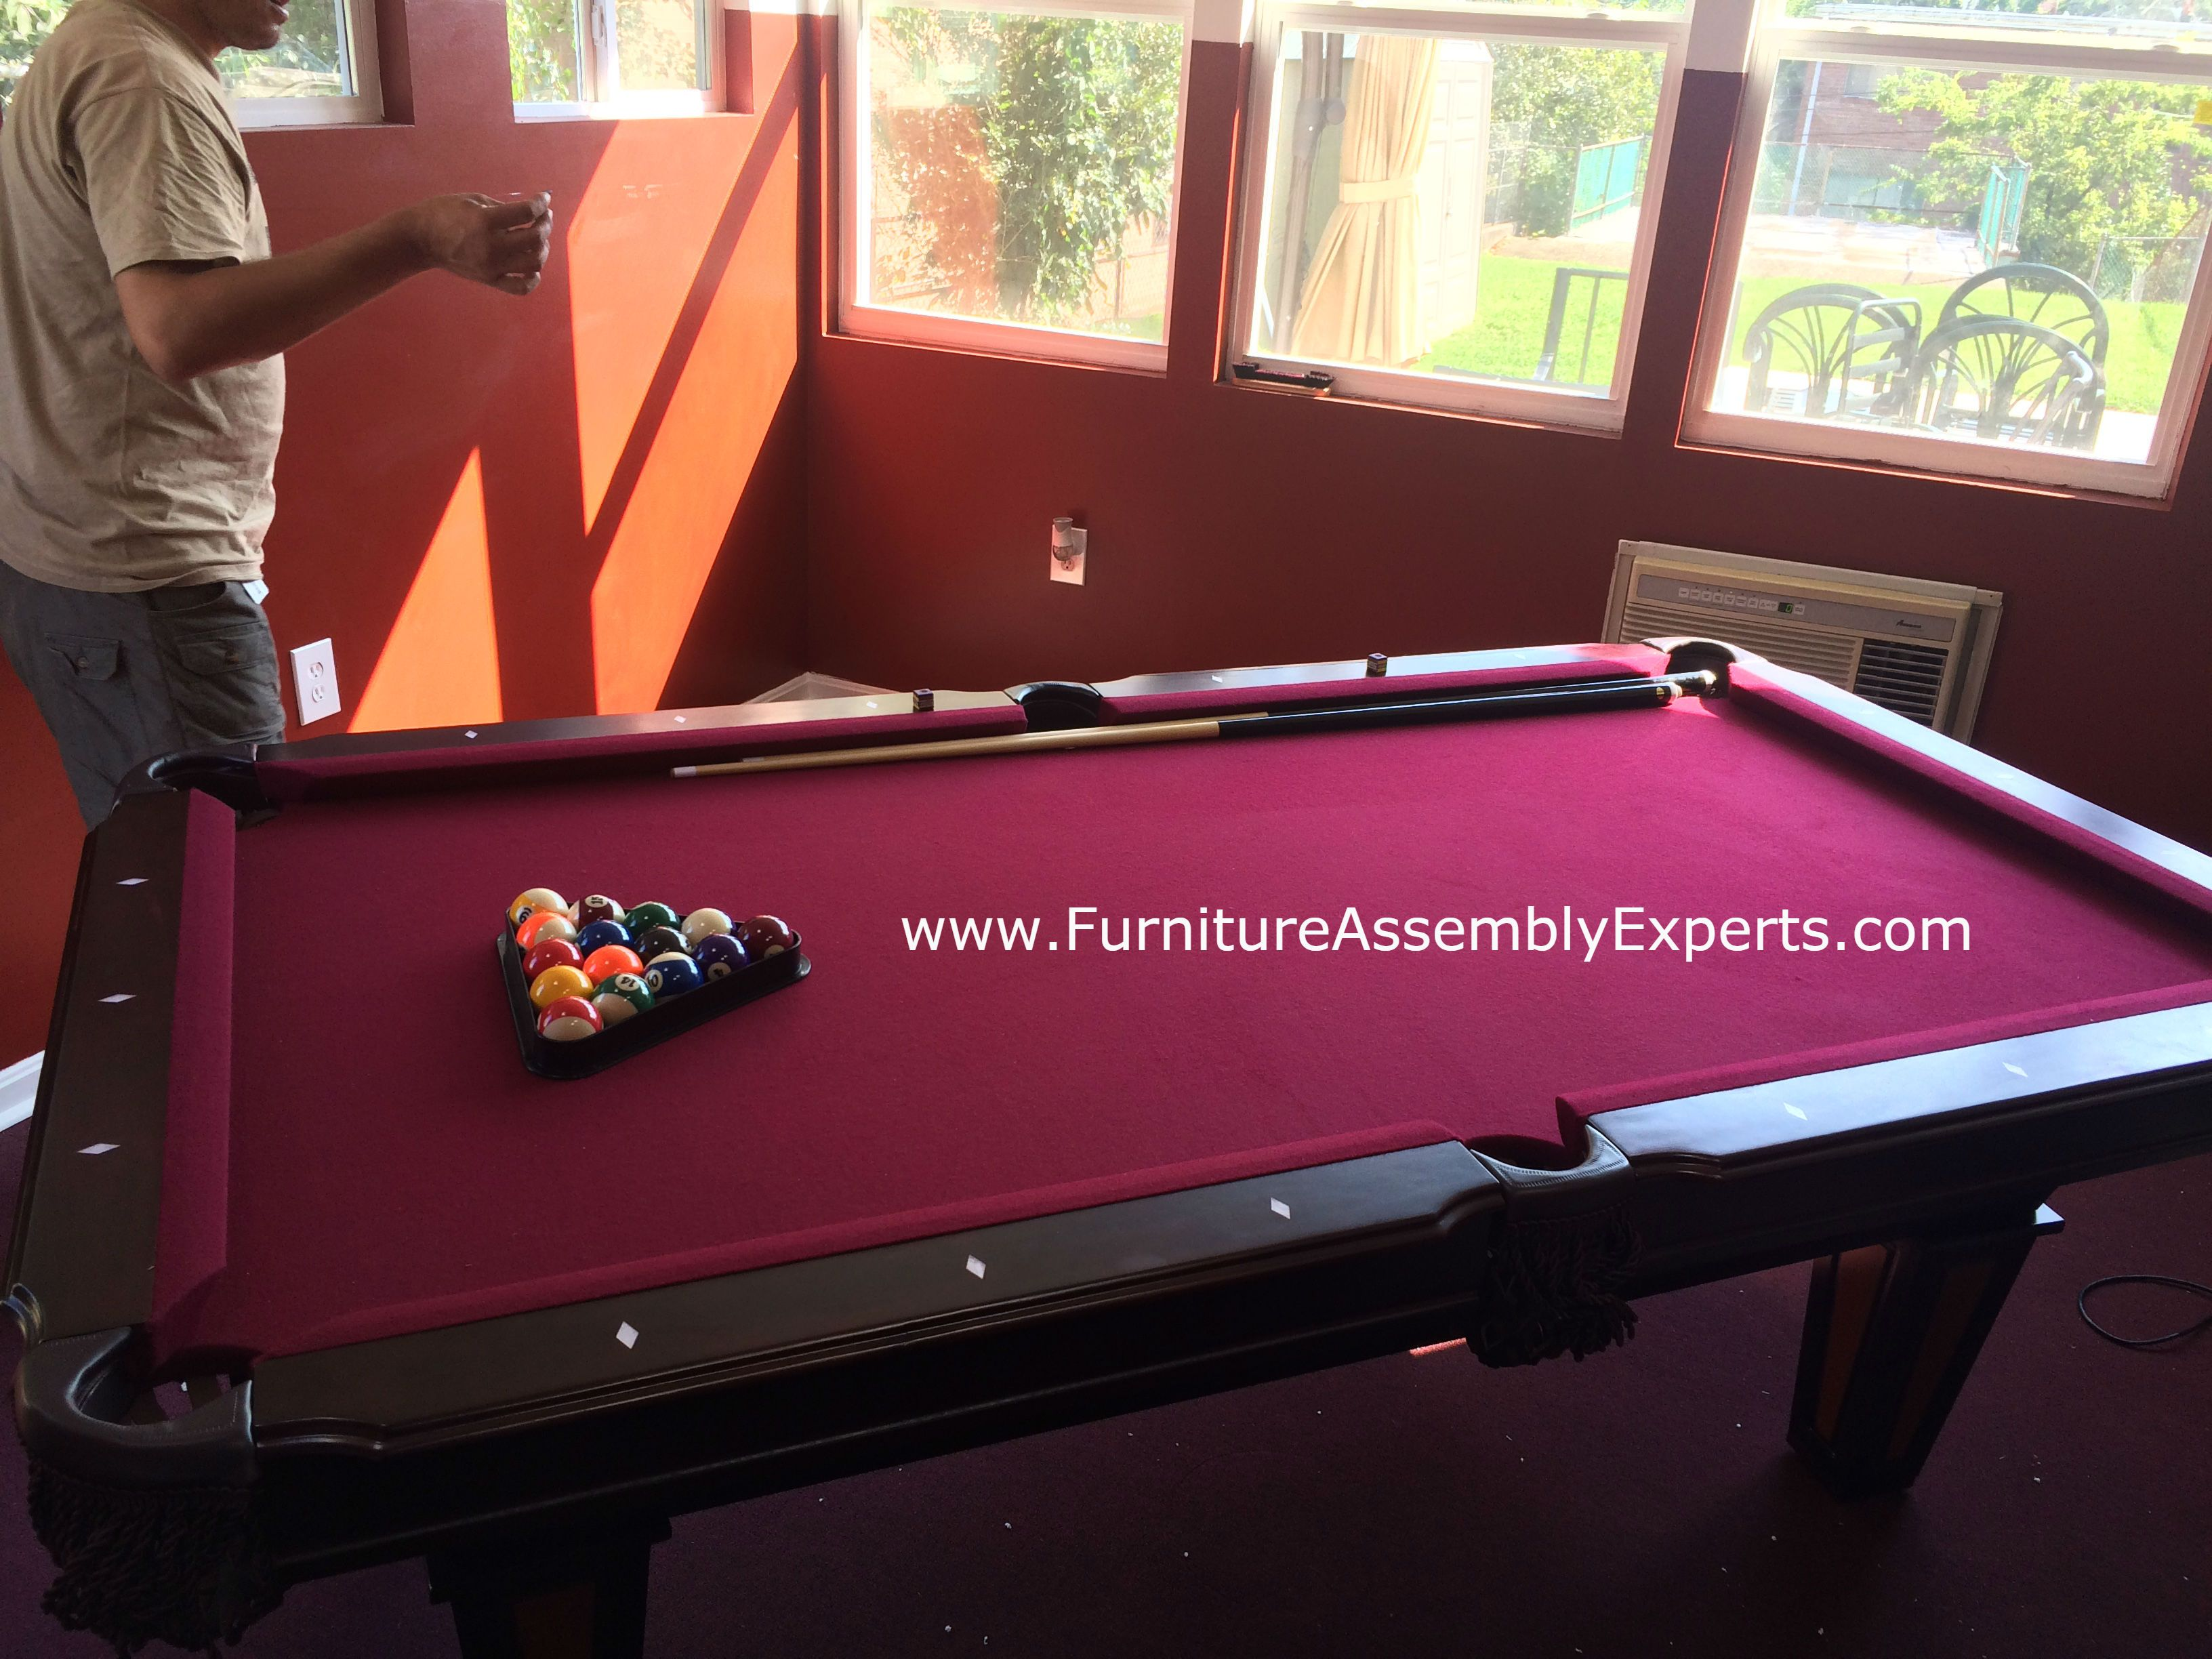 Billiard Pool Table Disassembly Moving Relocation Call - Pool table assembly service near me